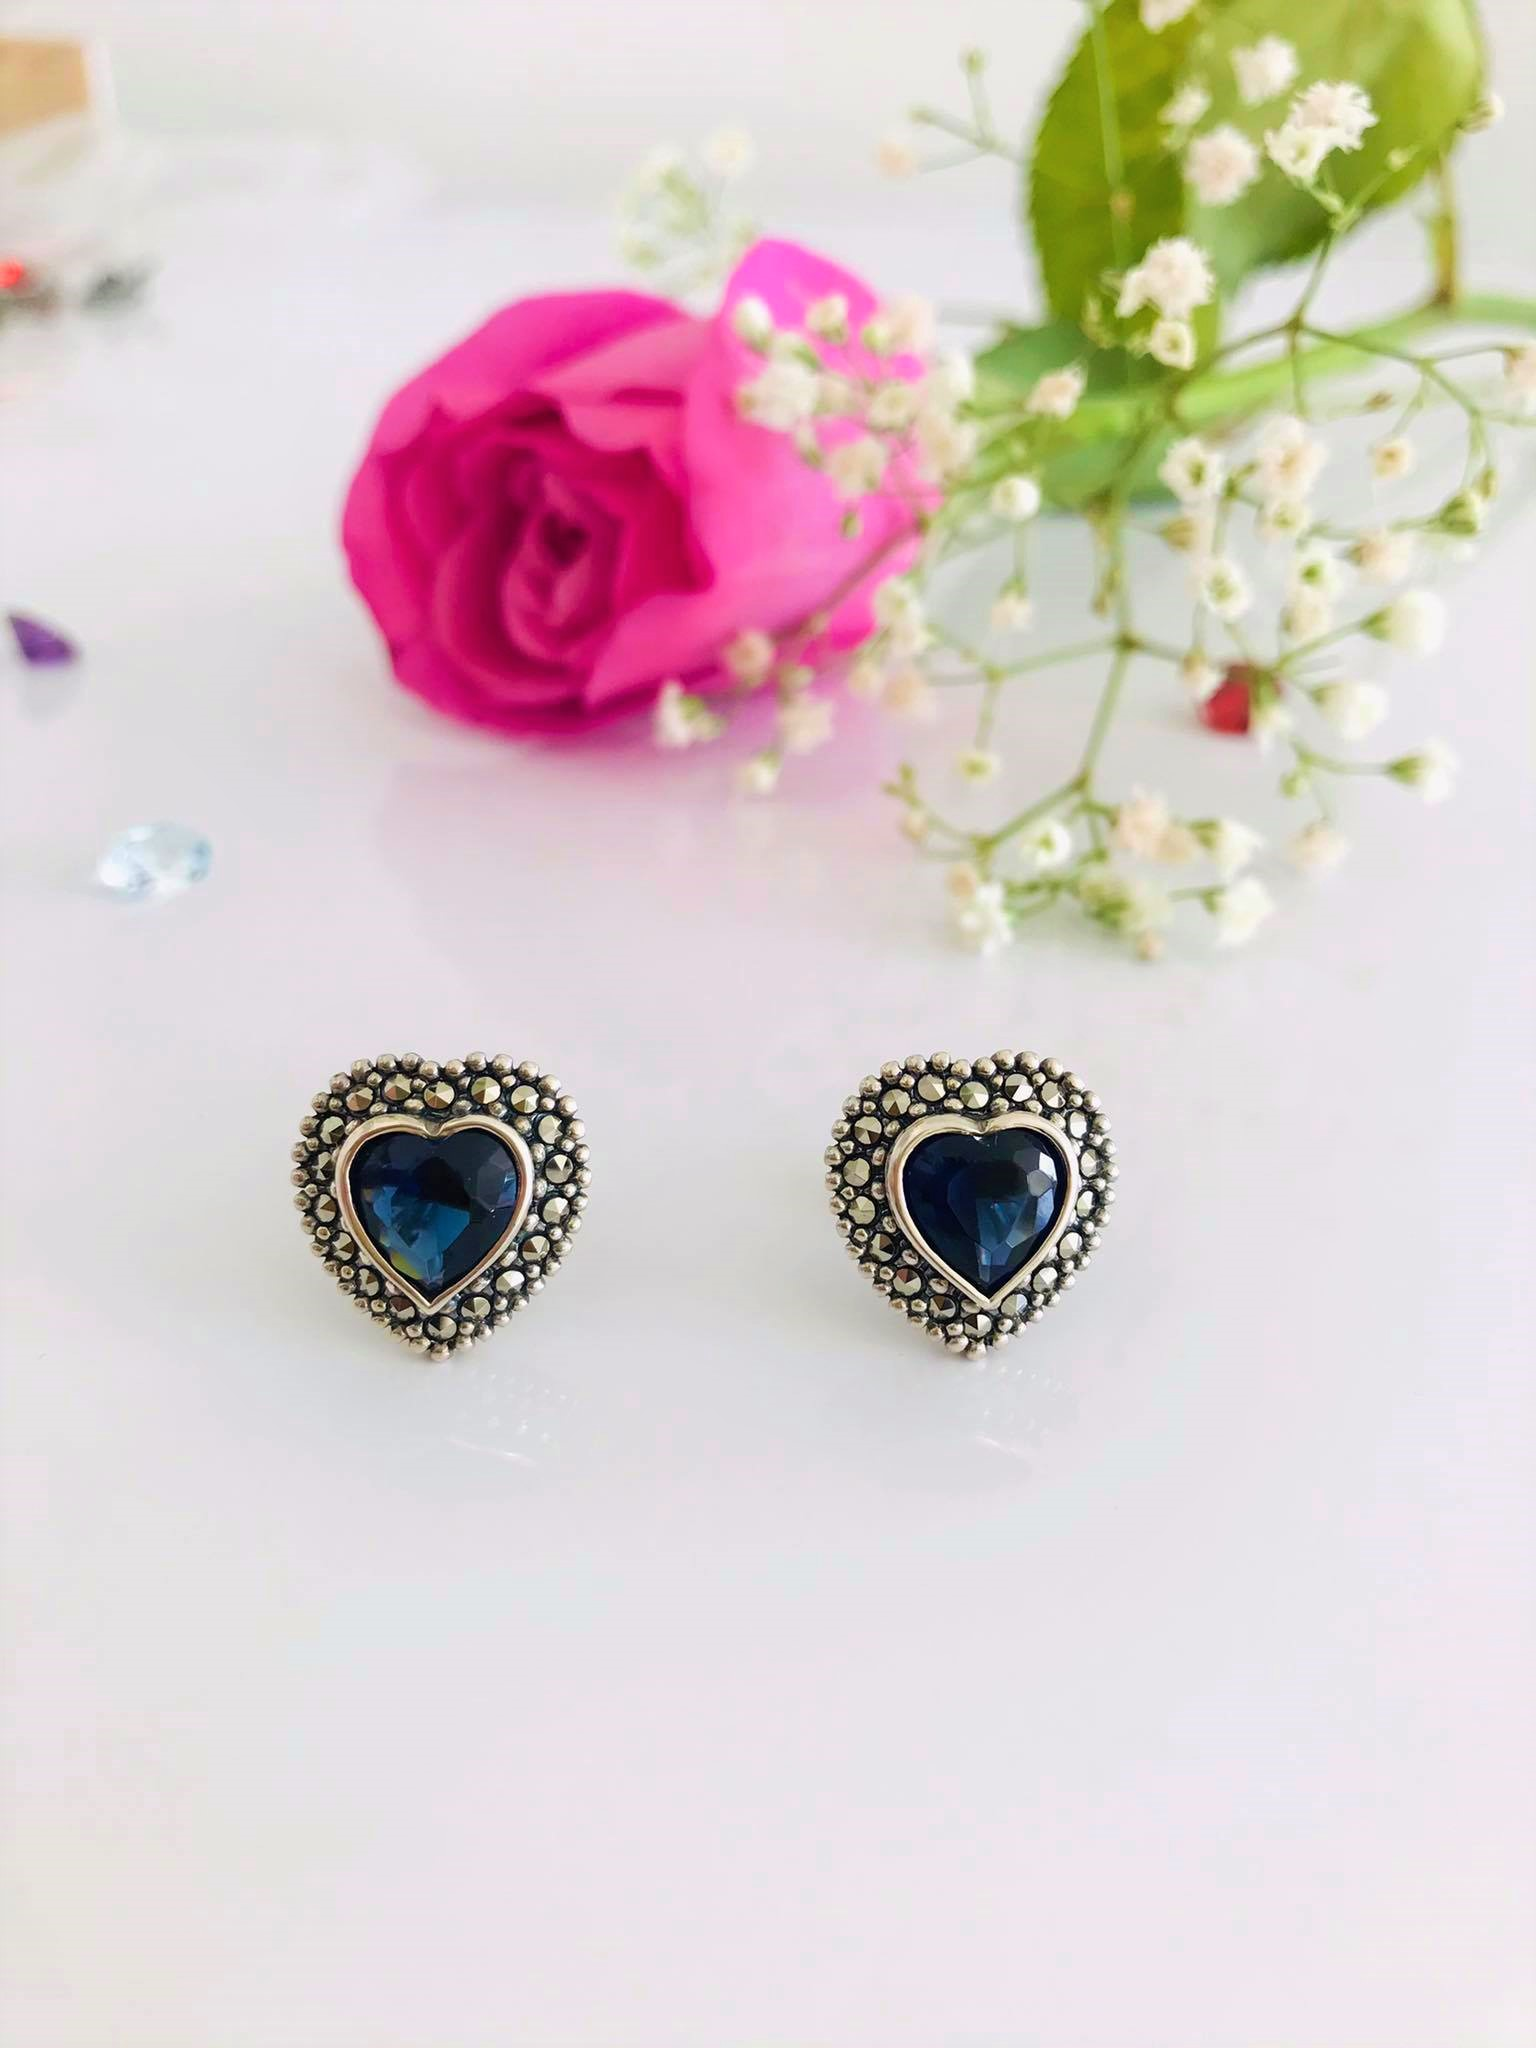 Large Beautiful Heart  Shape Sapphire and Marcasite Stud Earrings  Image